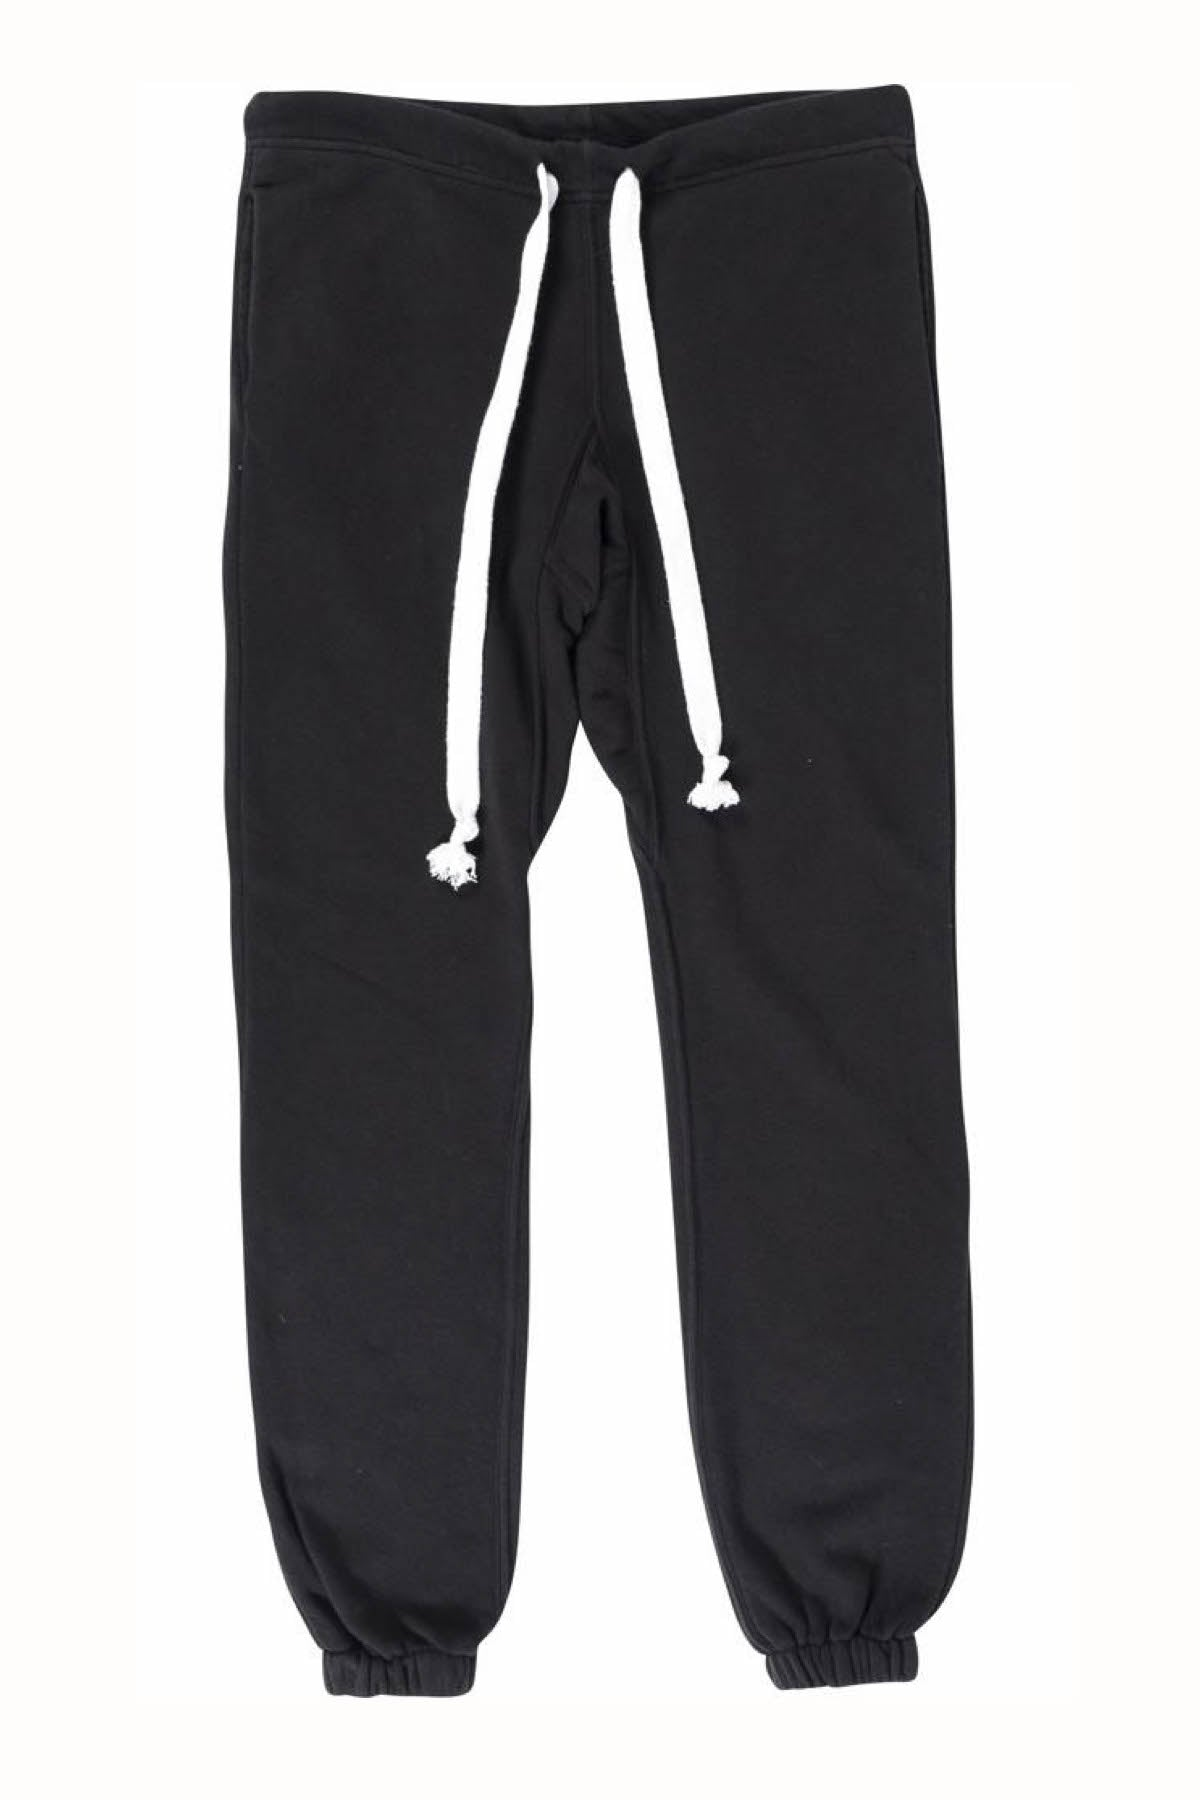 Rxmance Unisex Phantom Black Sweatpant w/ Pocket